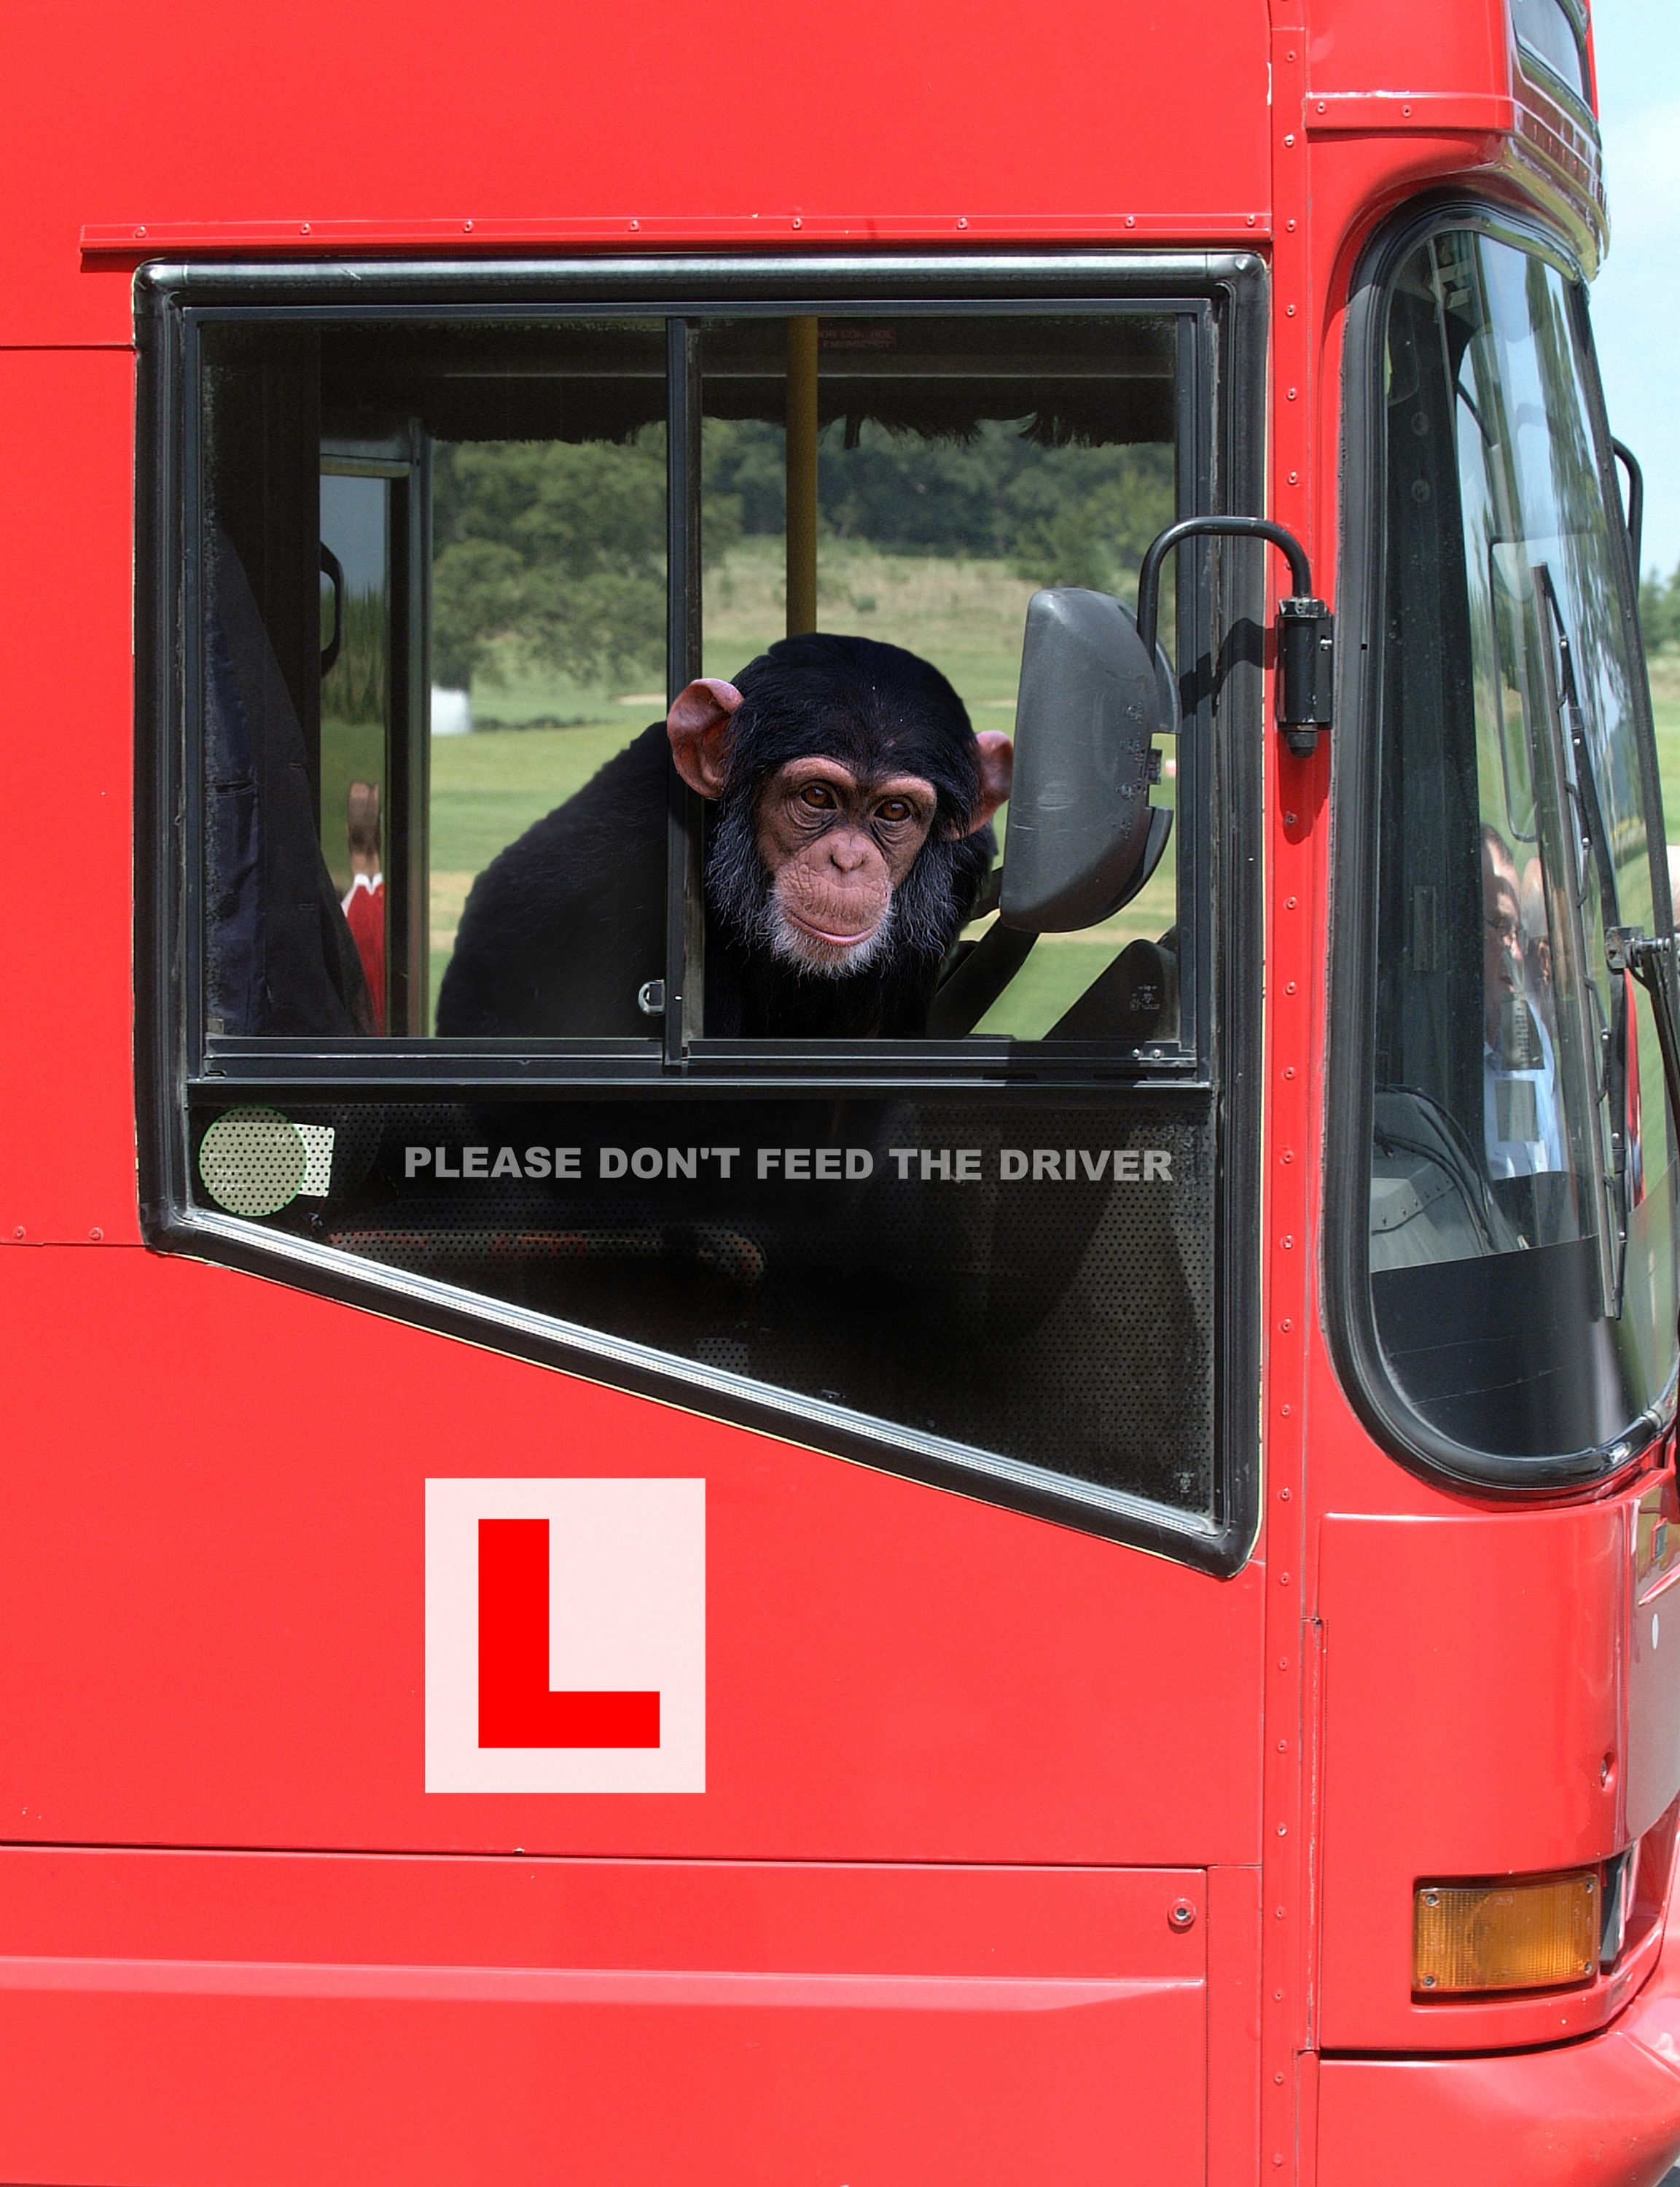 Monkey driving - A visit to the Dublin Zoo is one of the top things to do in Dublin on Sunday